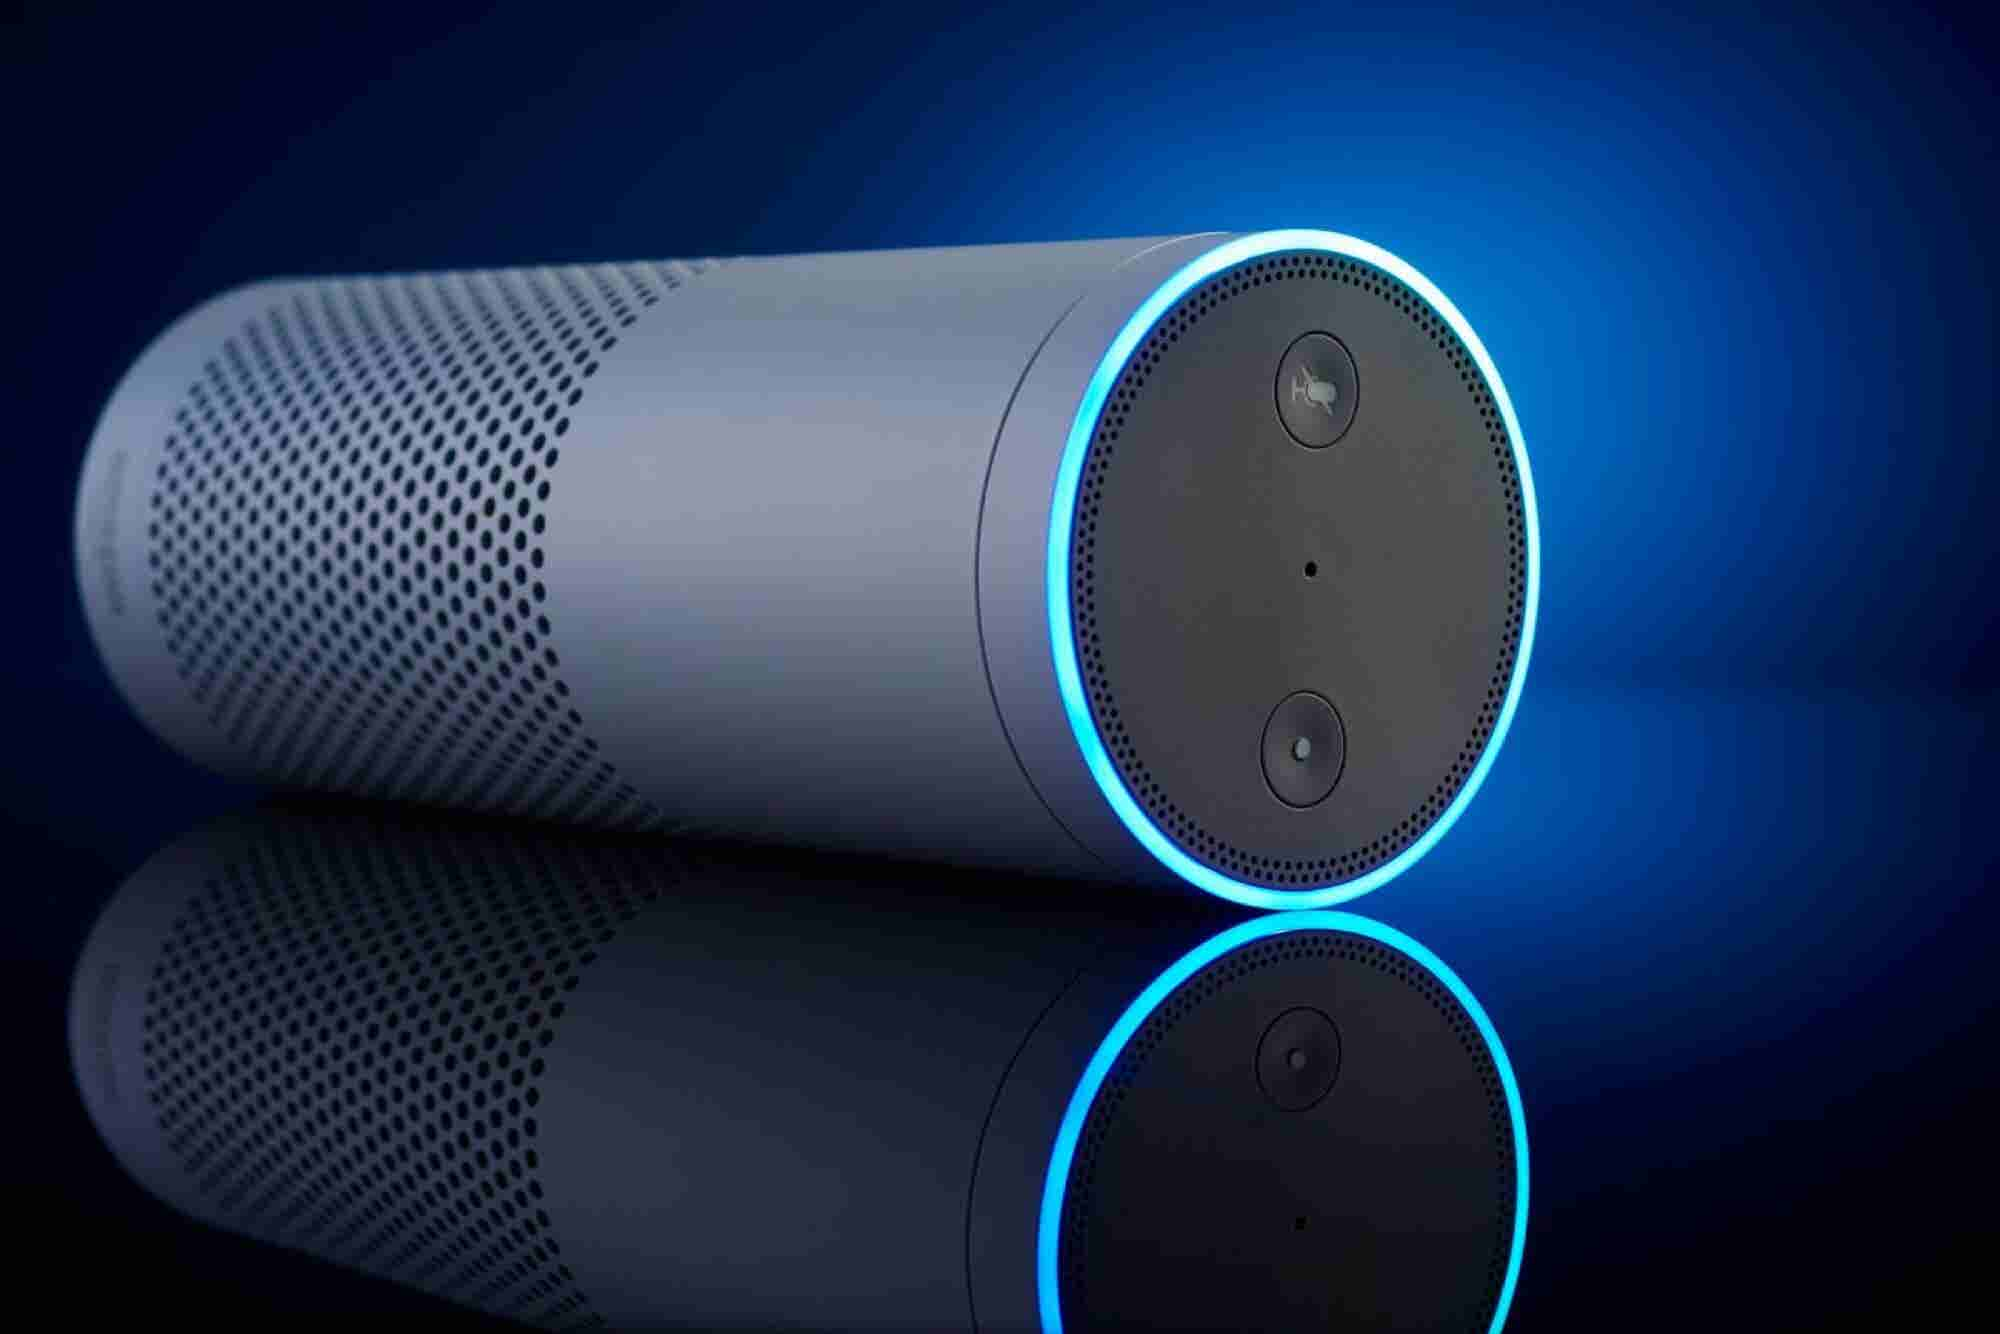 How Entrepreneurs Can Adapt Today's 'Smart Assistants' to Build Tomorr...